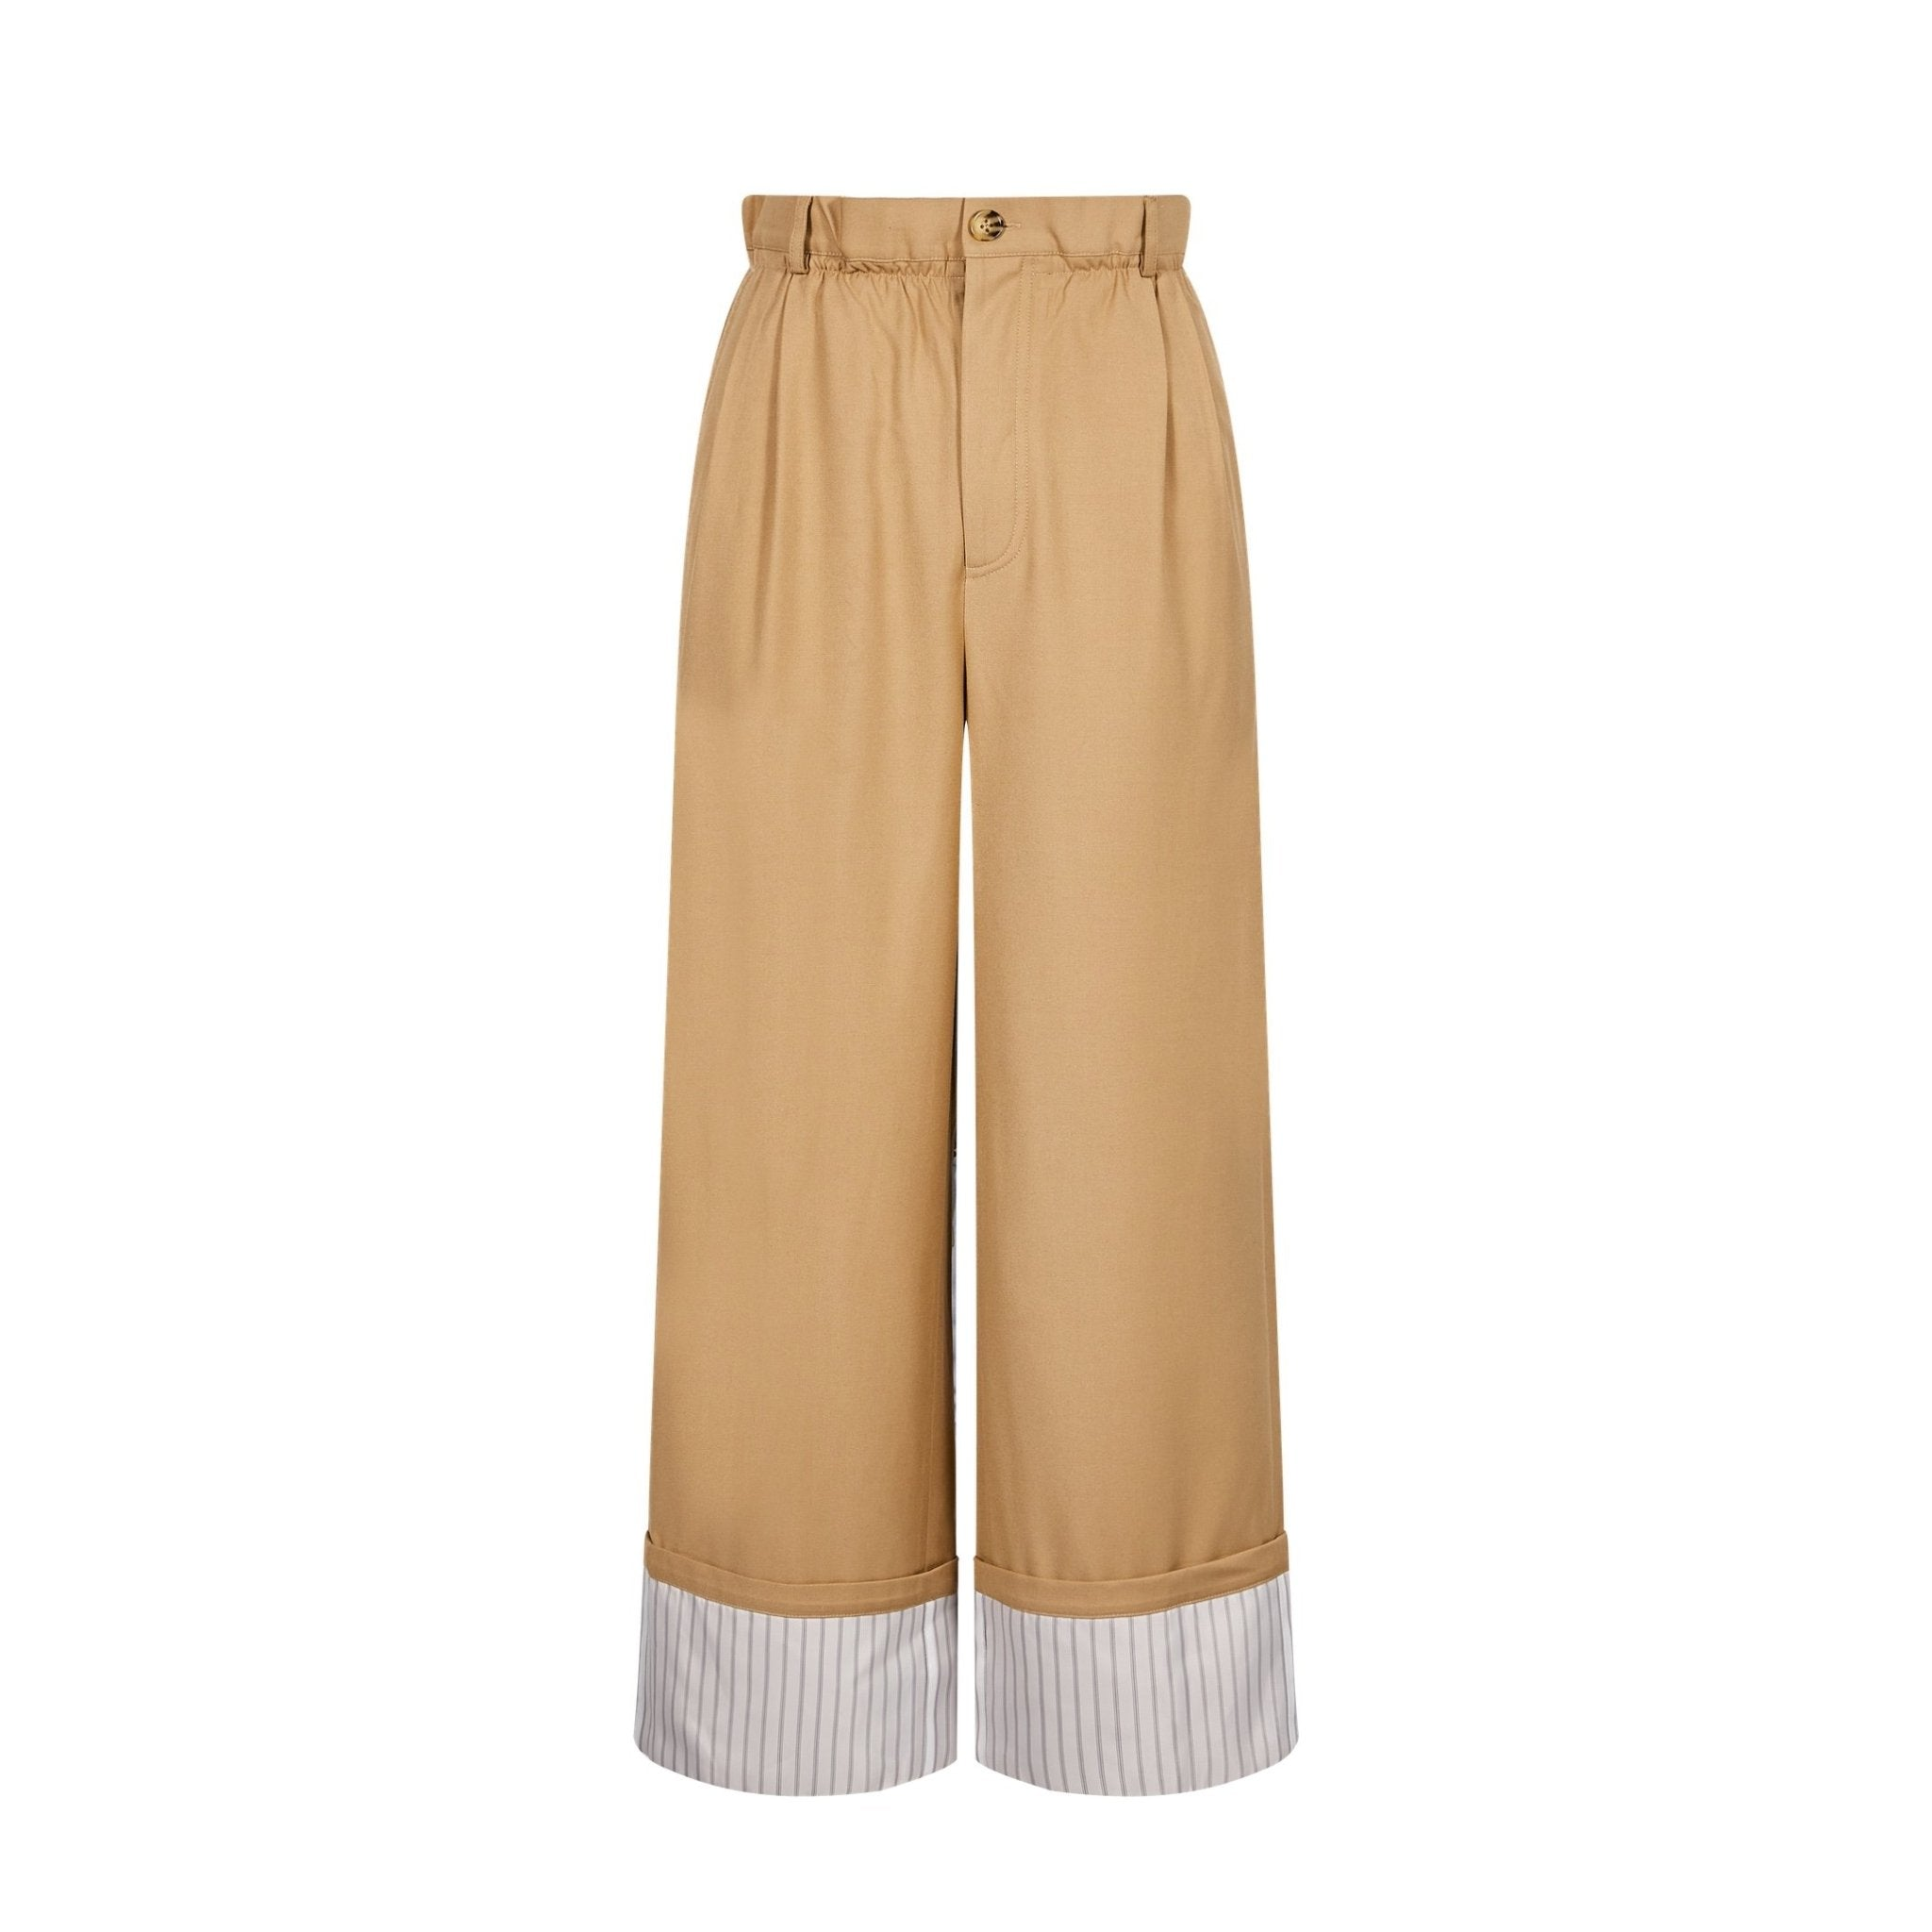 EIMISMOSOL Khaki Ruffled Pants | MADA IN CHINA